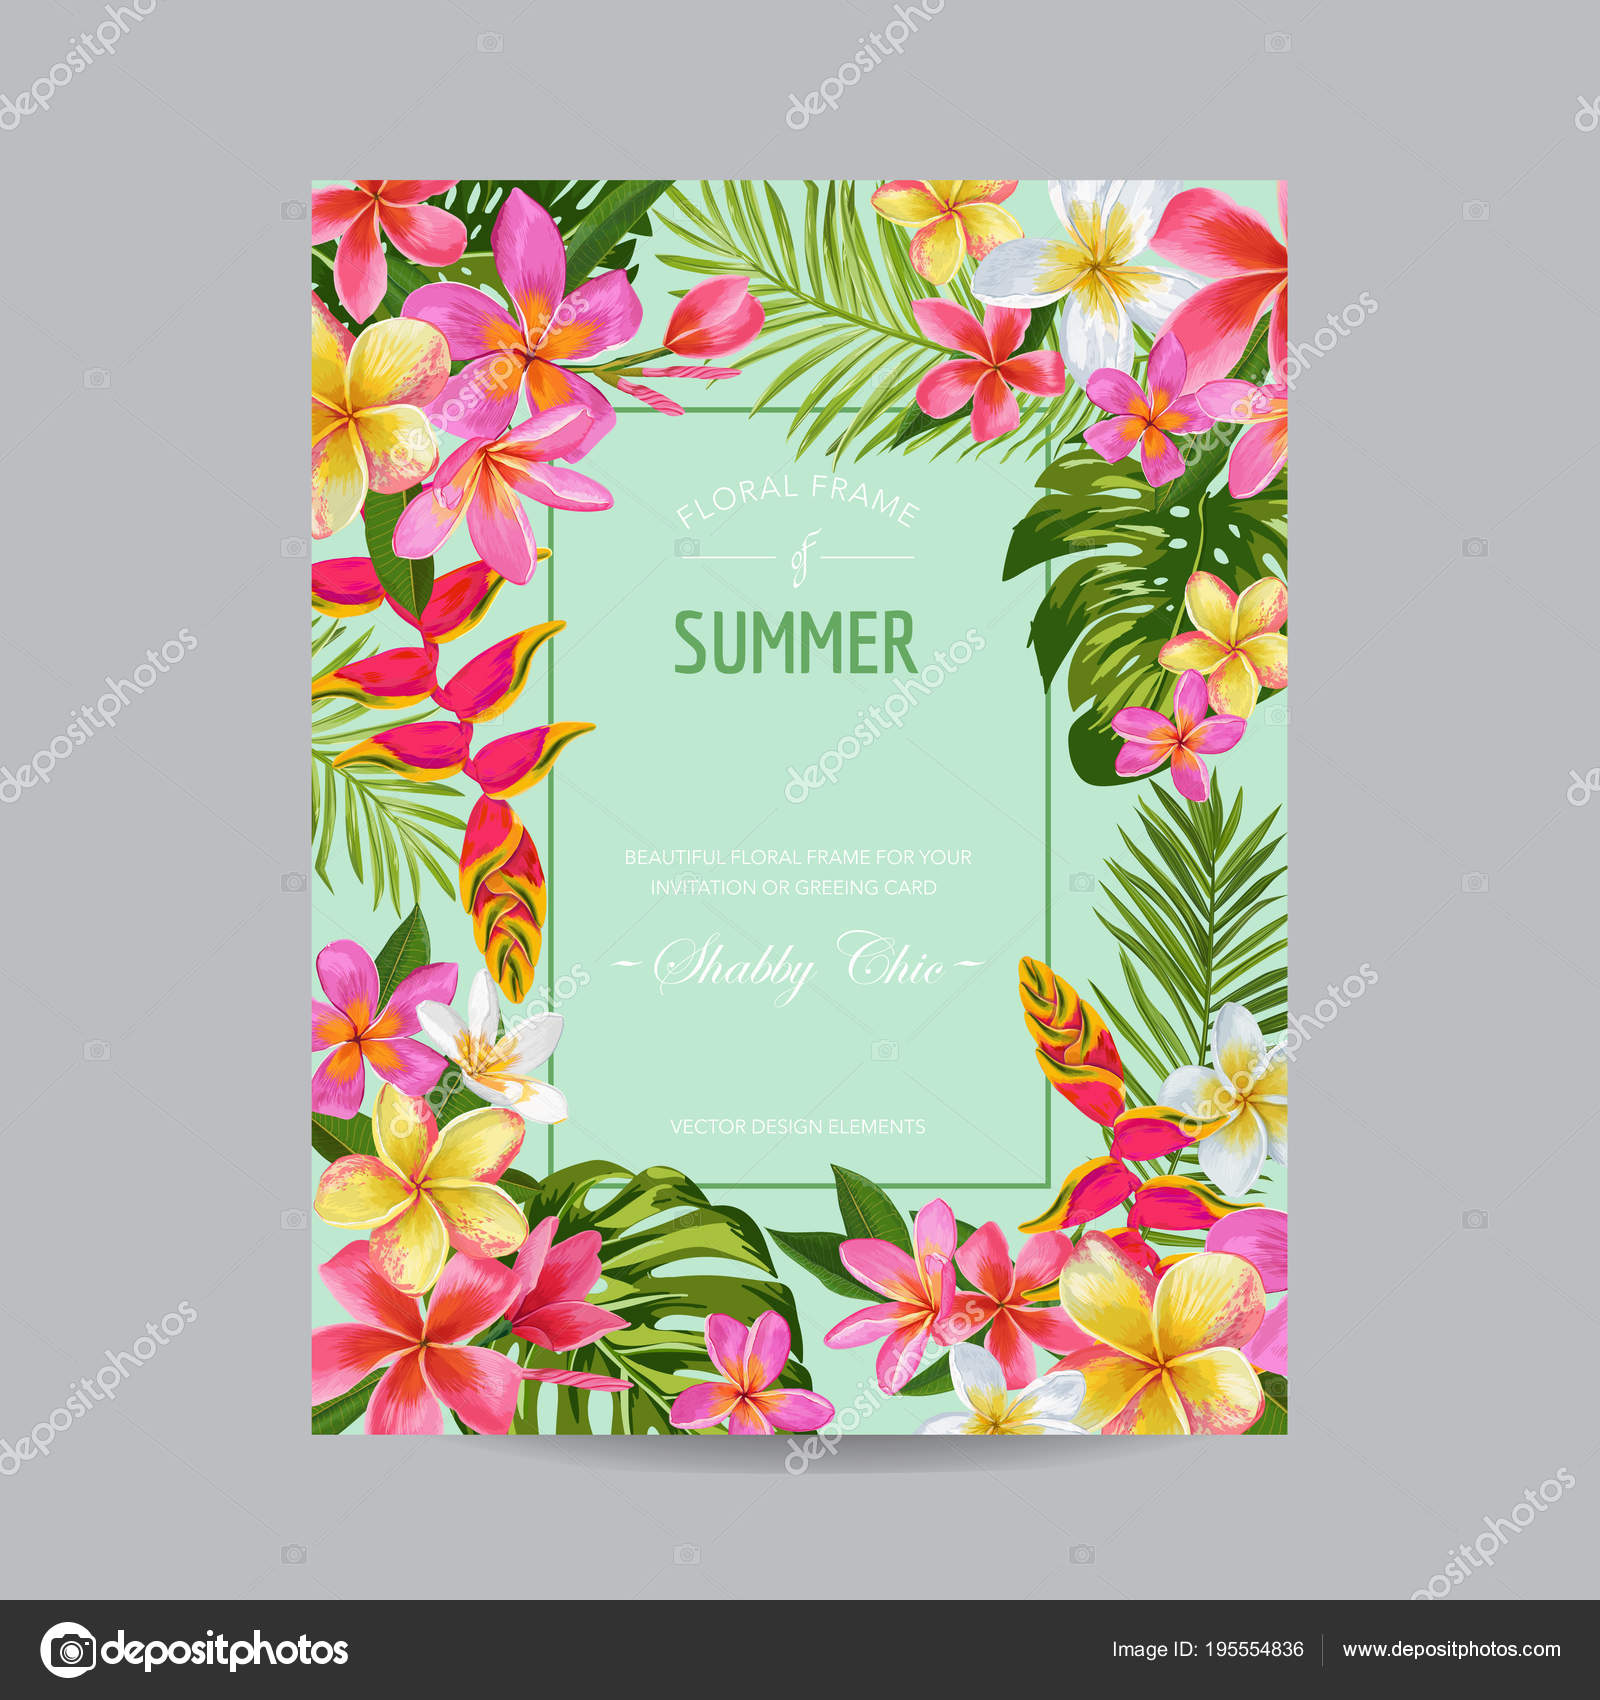 blooming summer floral frame poster banner tropical flowers card